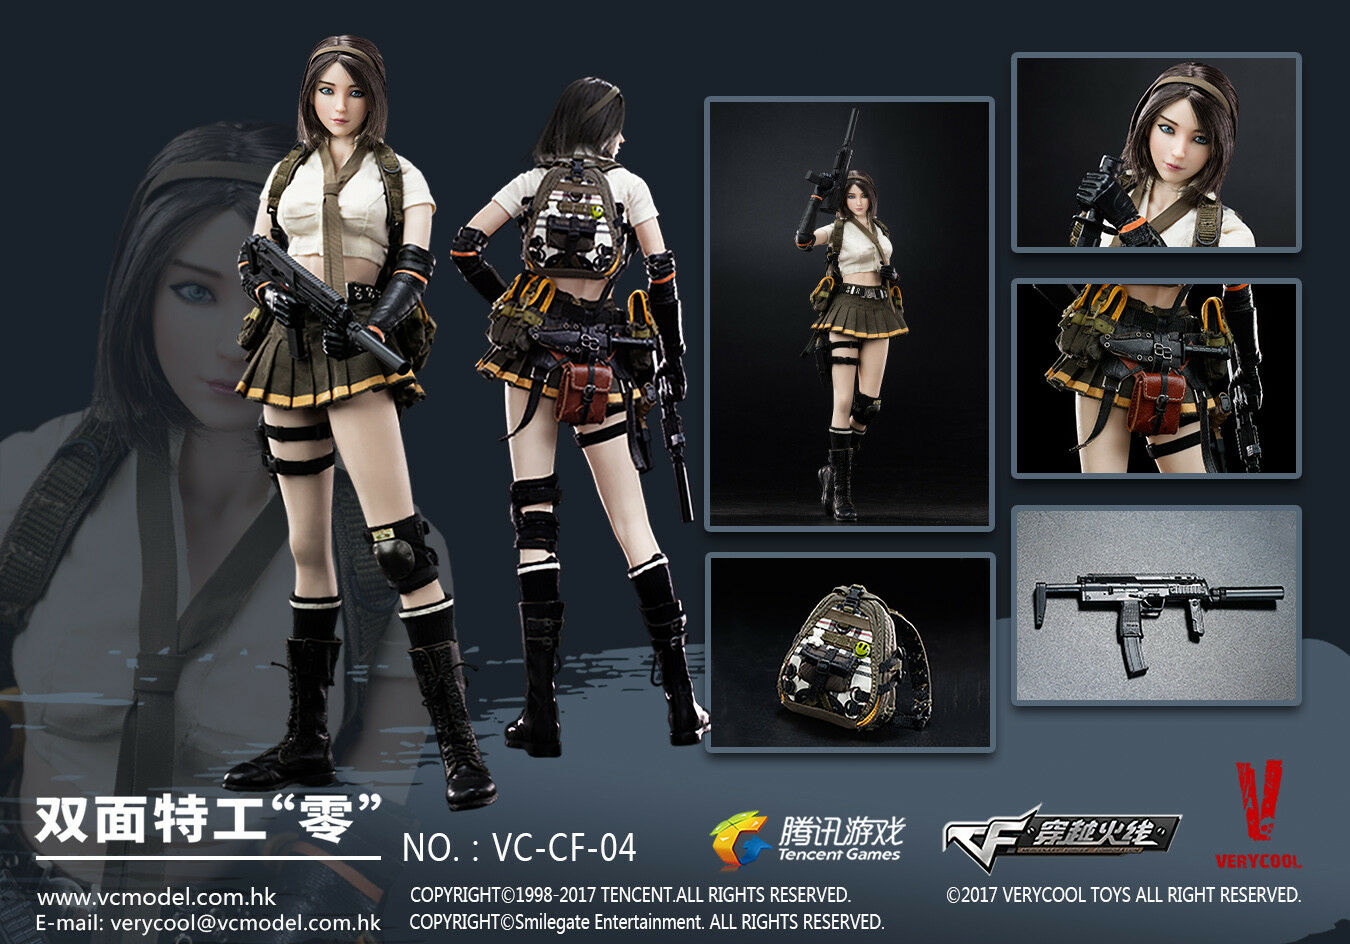 VERYCOOL VC-CF-04 1:6th Cross Fire Double Agent ZERO Female 12